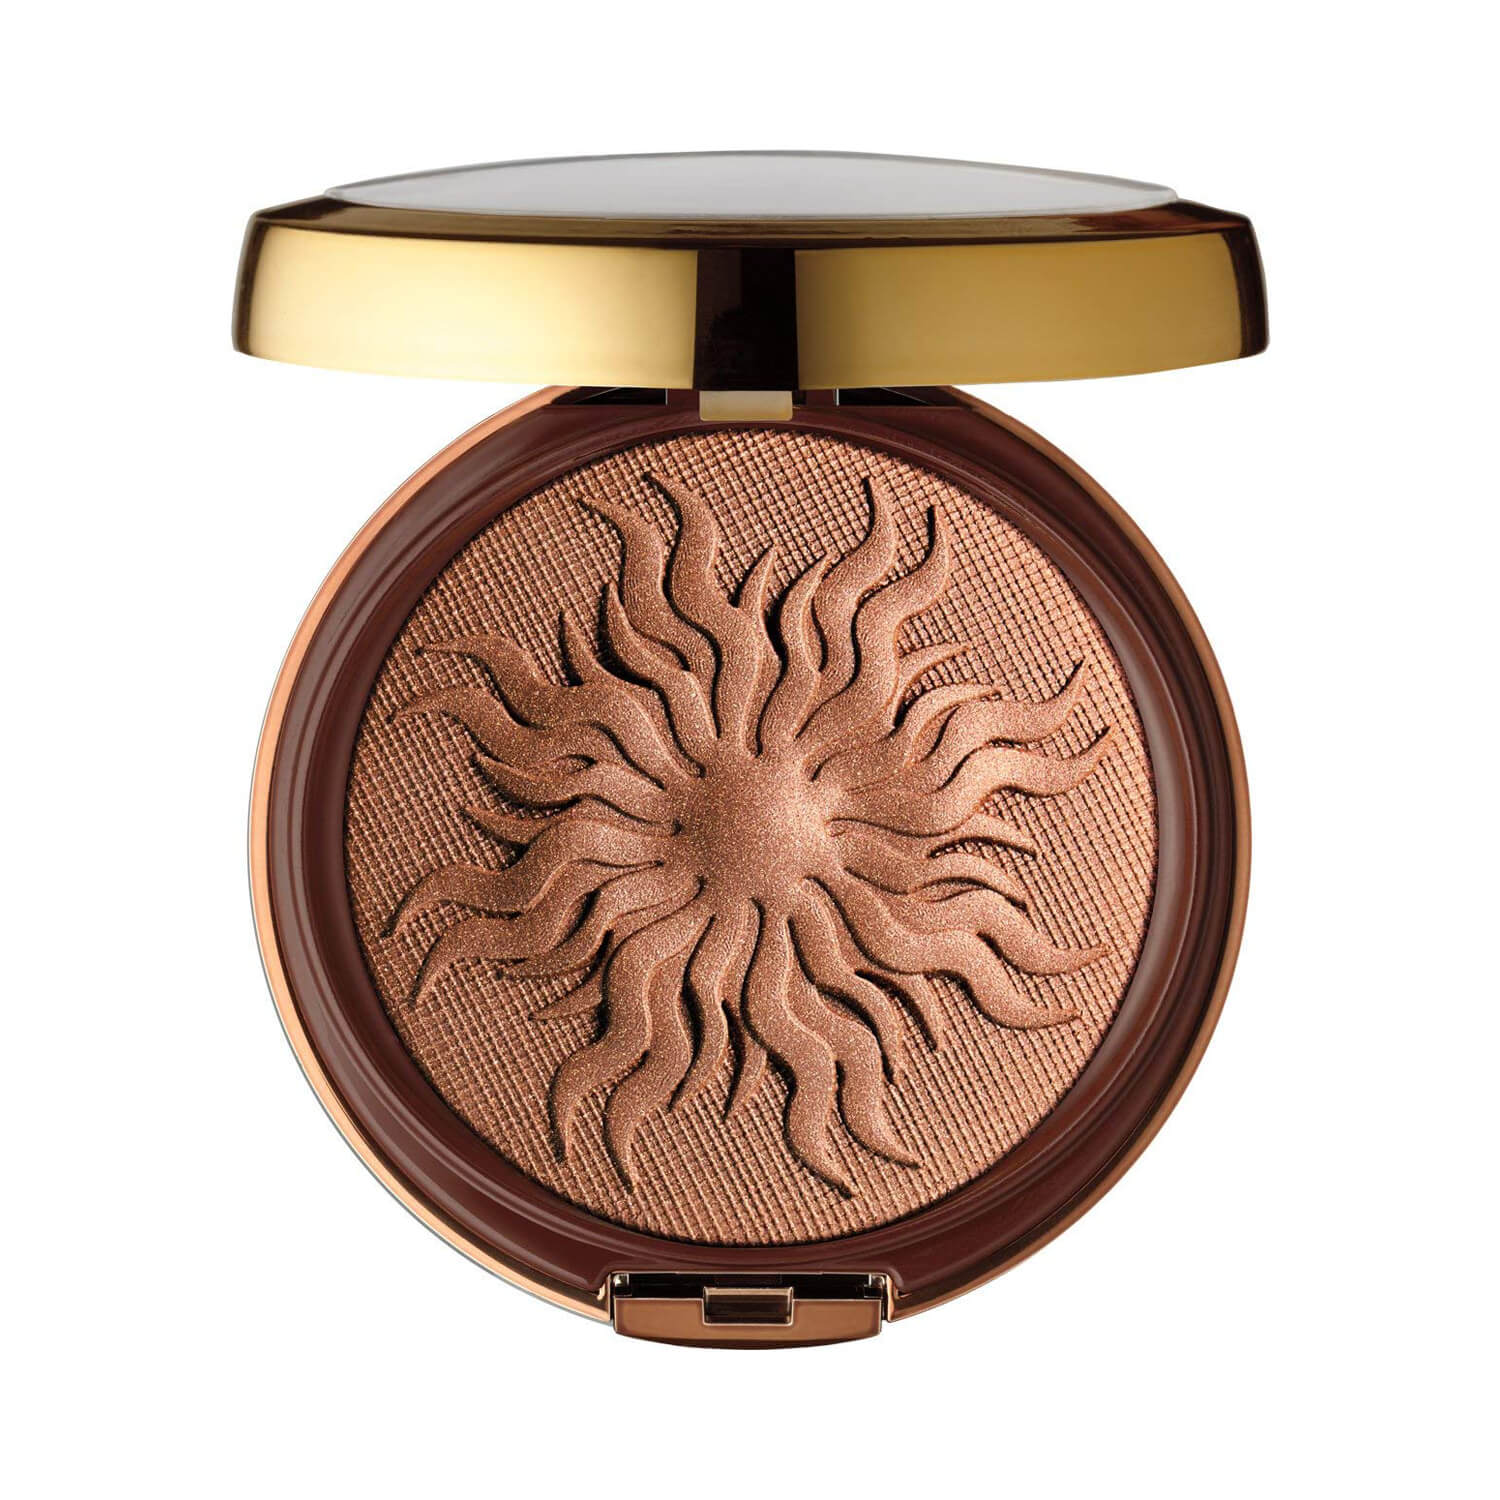 Physicians Formula Bronze Booster Glow-Boosting Airbrushing Bronzing Veil Deluxe Edition Light to Medium